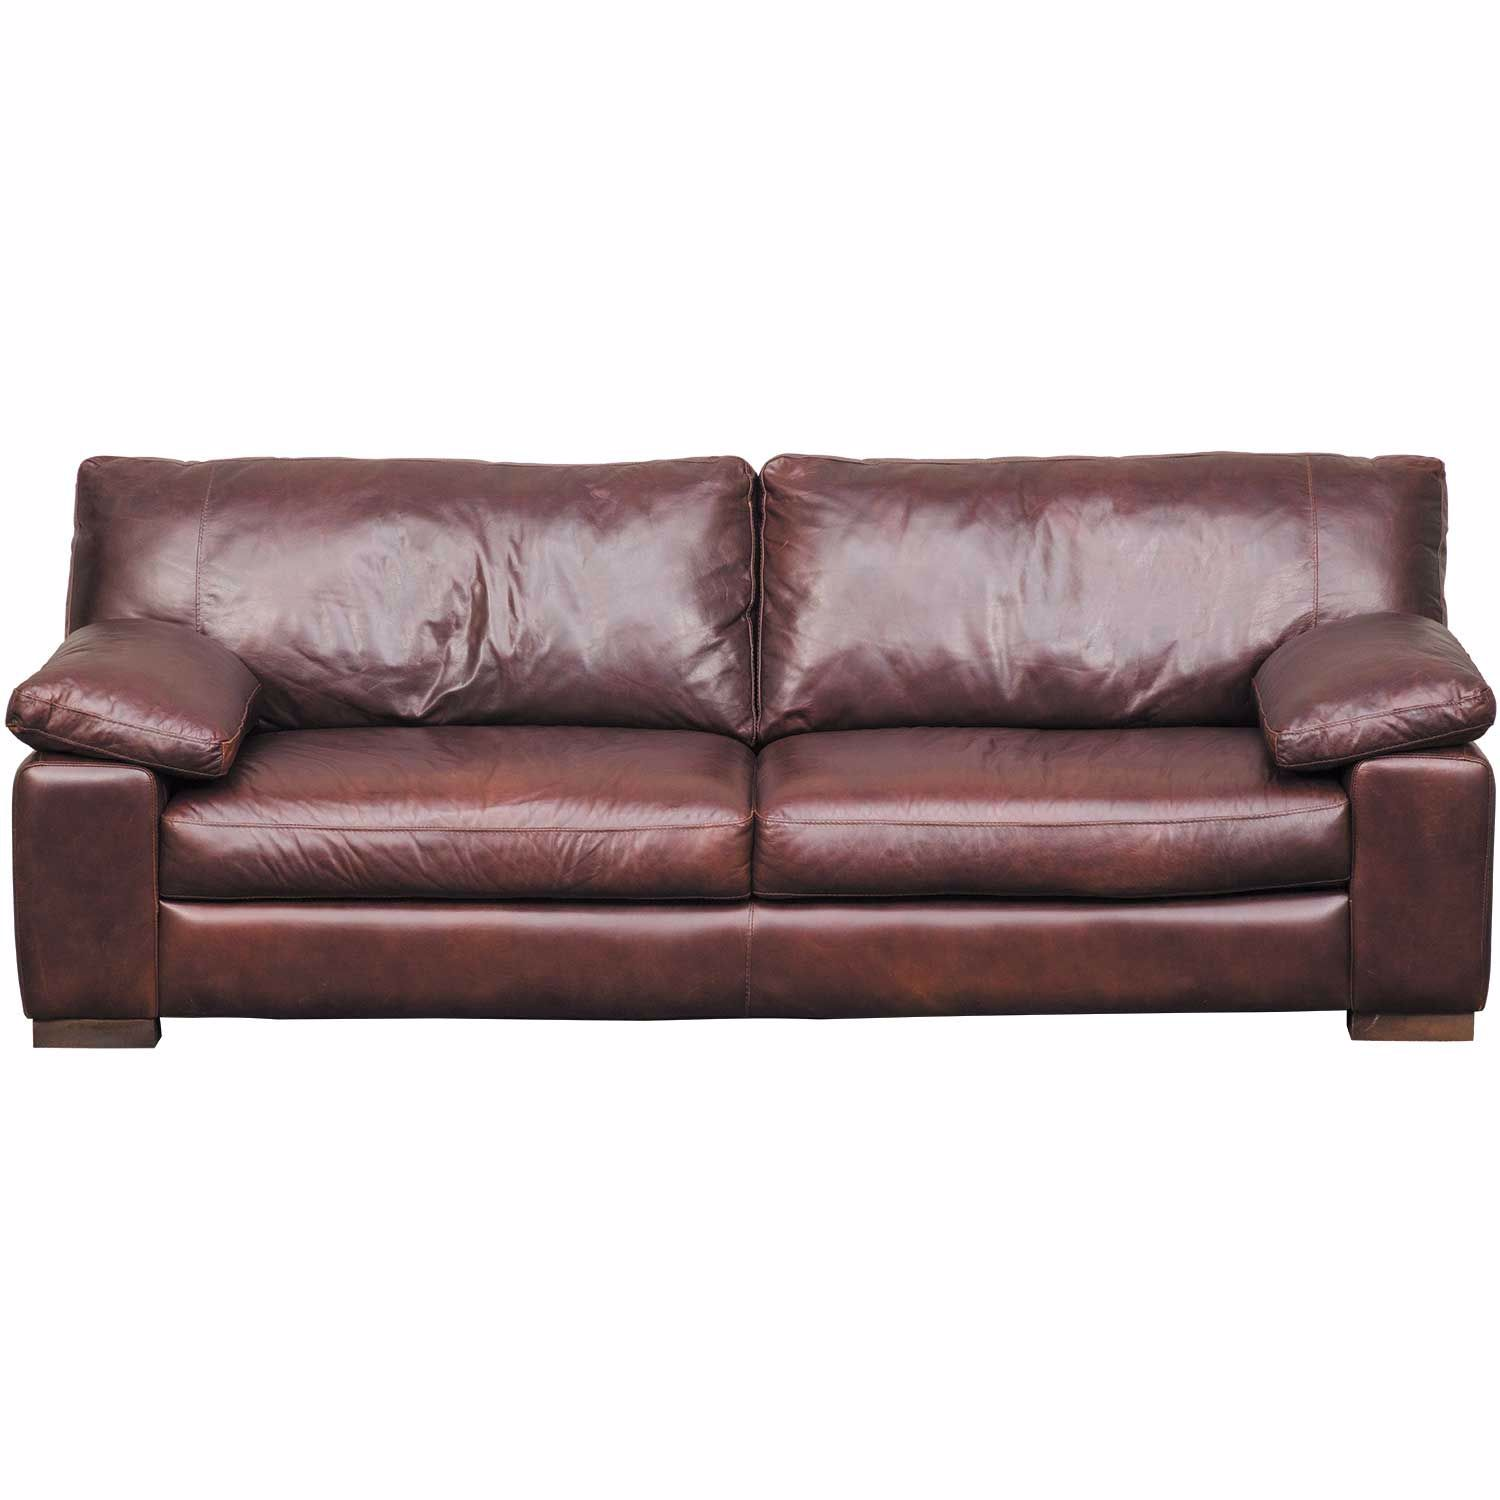 Peachy Barcelona All Leather Sofa Unemploymentrelief Wooden Chair Designs For Living Room Unemploymentrelieforg